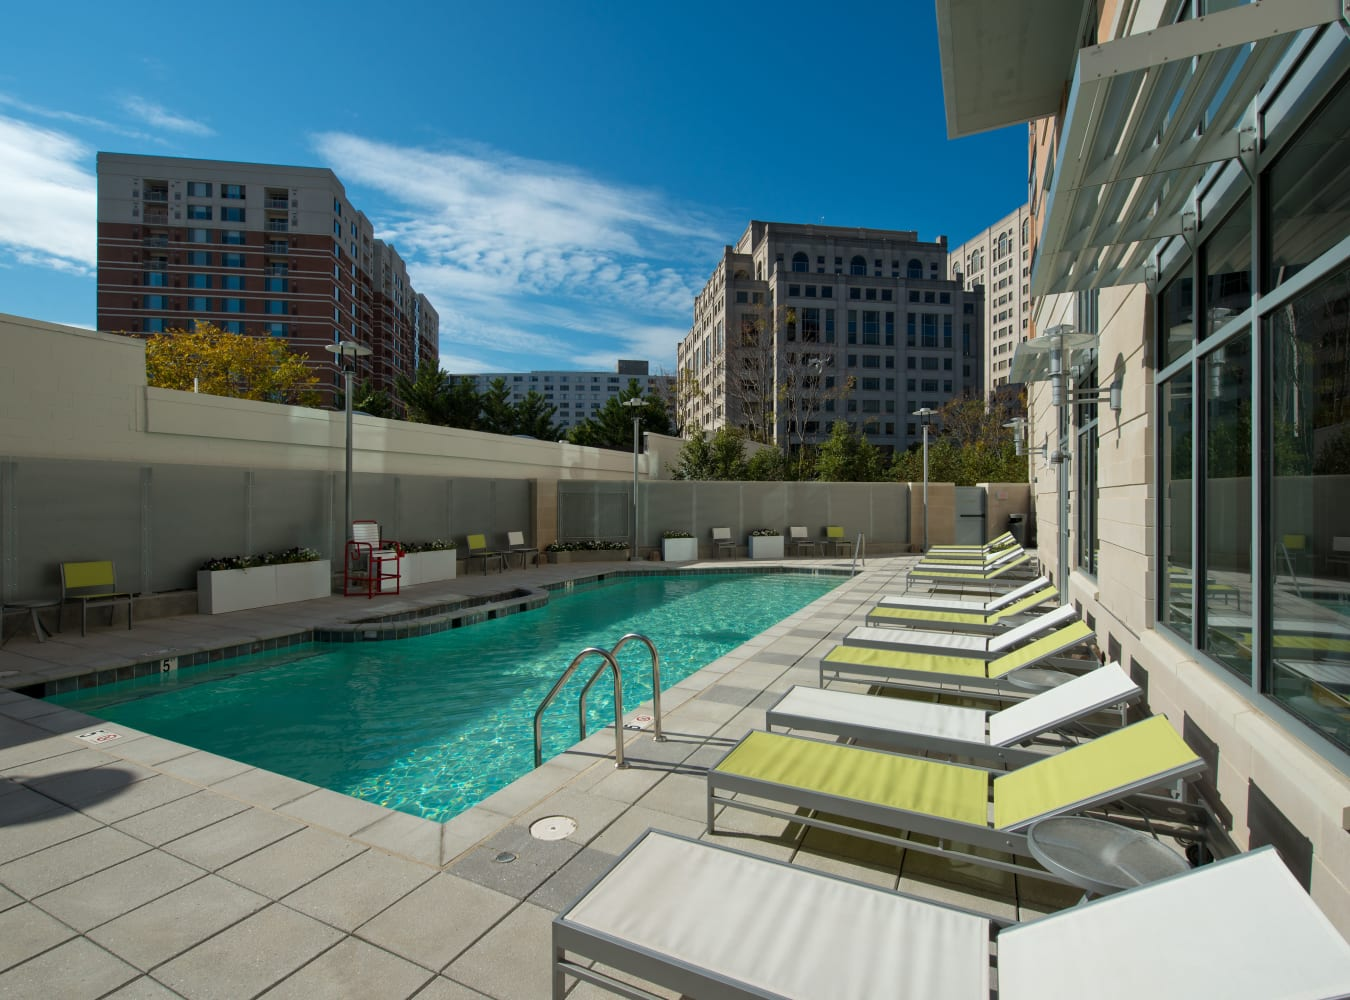 A resort-style swimming pool with lounge chairs at Solaire 1150 Ripley in Silver Spring, Maryland